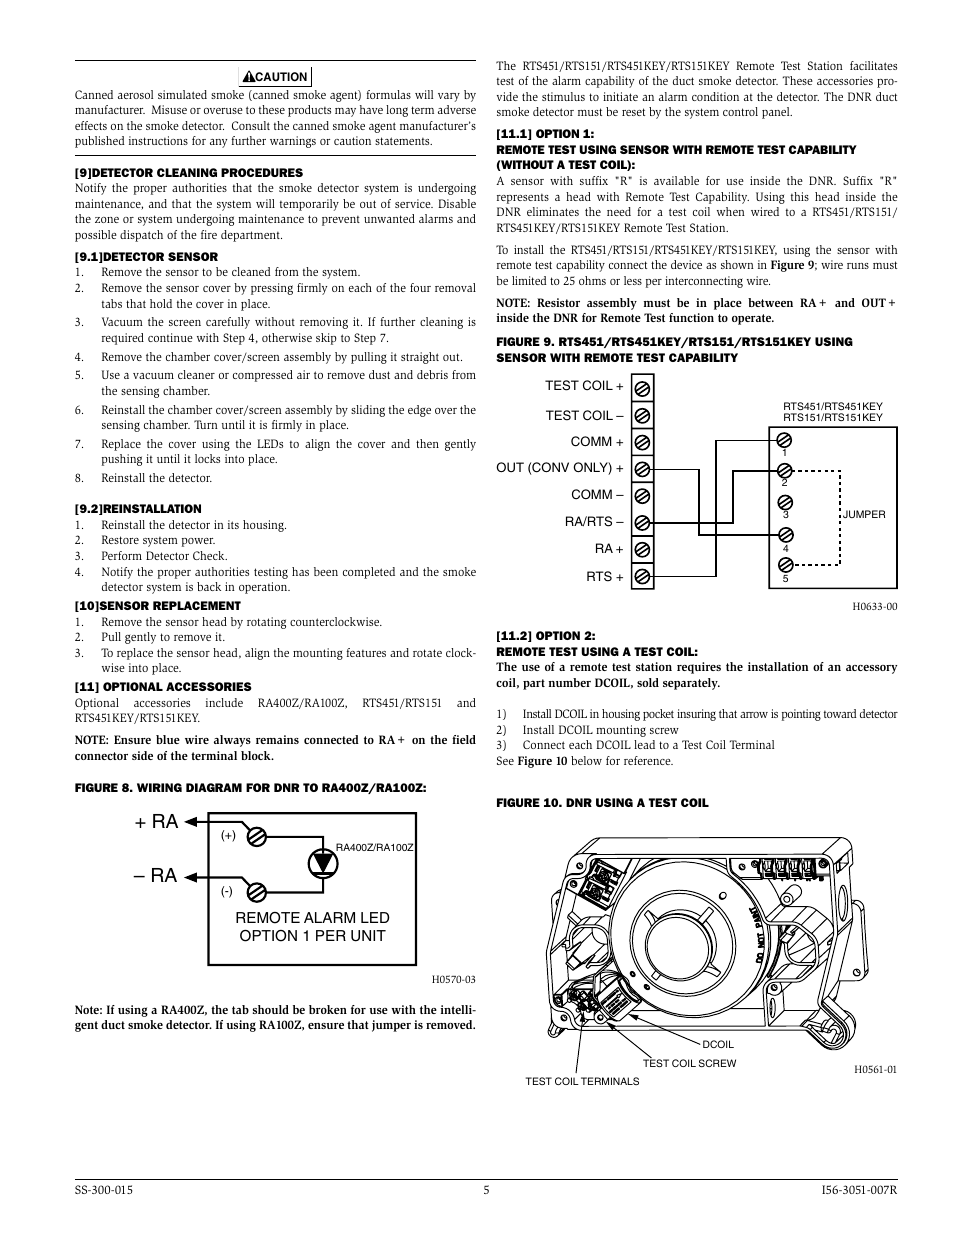 system sensor dnr page5 ra ra system sensor dnr user manual page 5 6 rts451 wiring diagram at webbmarketing.co